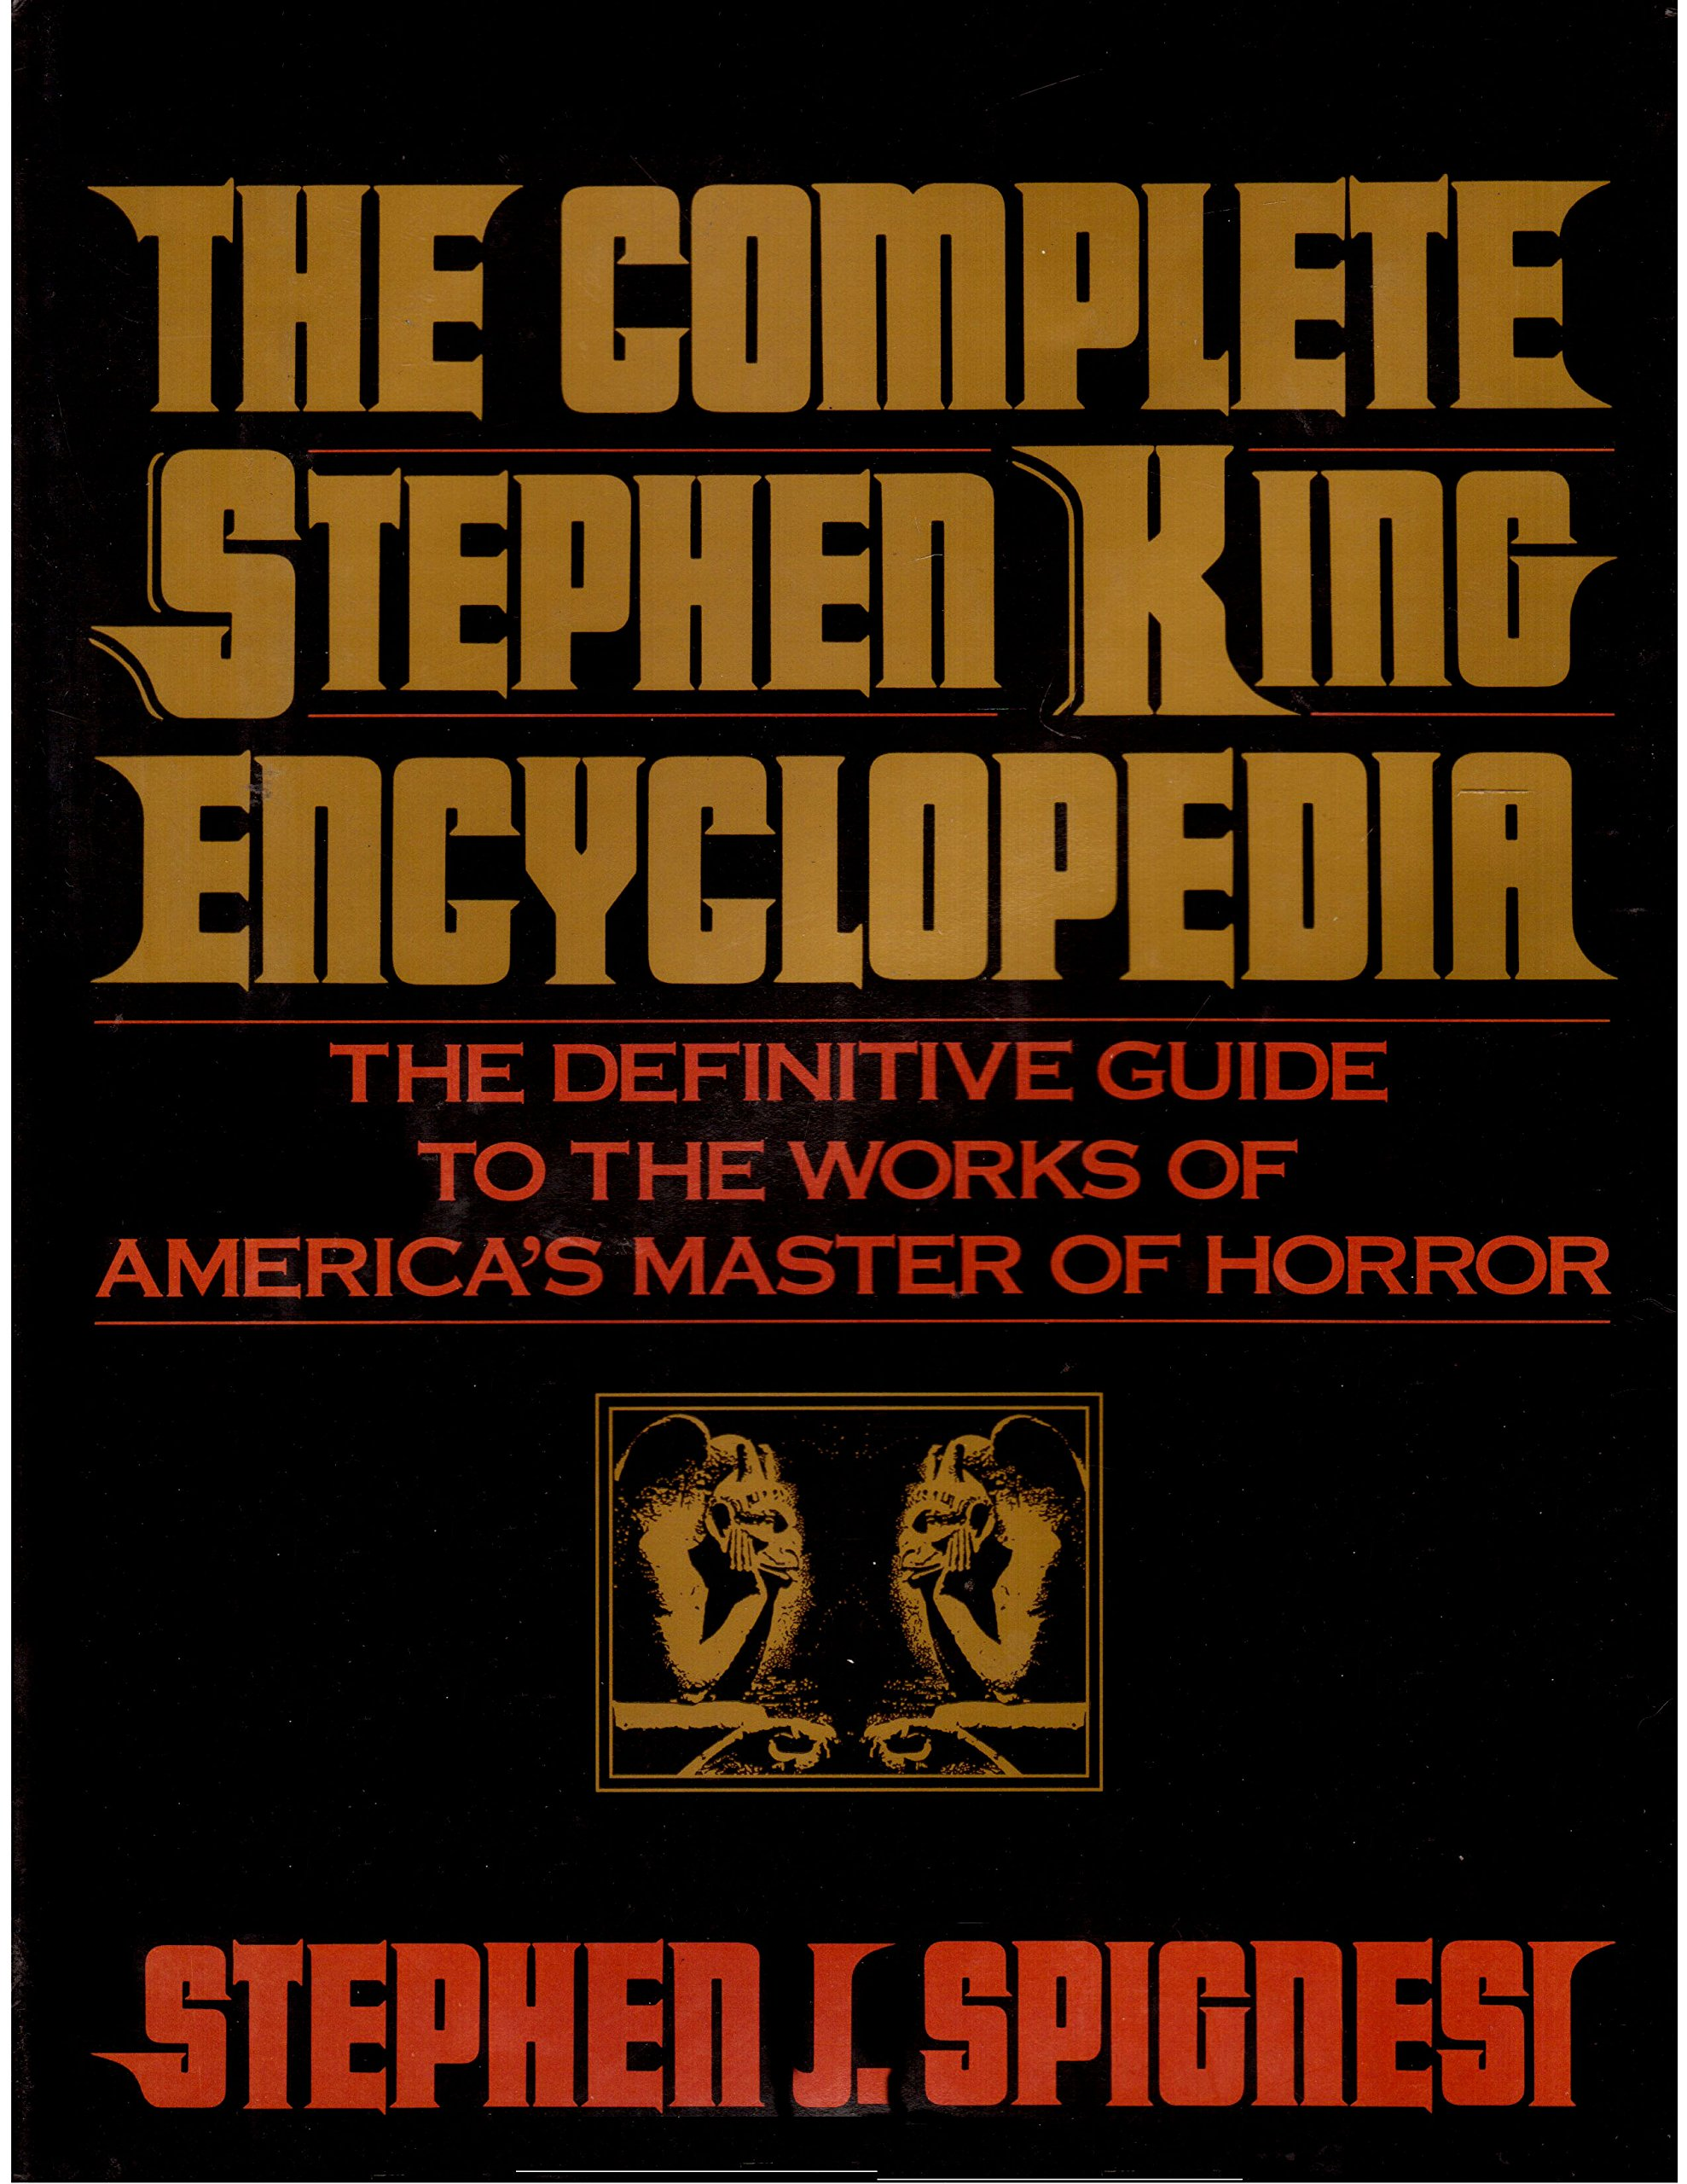 The Complete Stephen King Encyclopedia: The Definitive Guide to the Works of America's Master of Horror